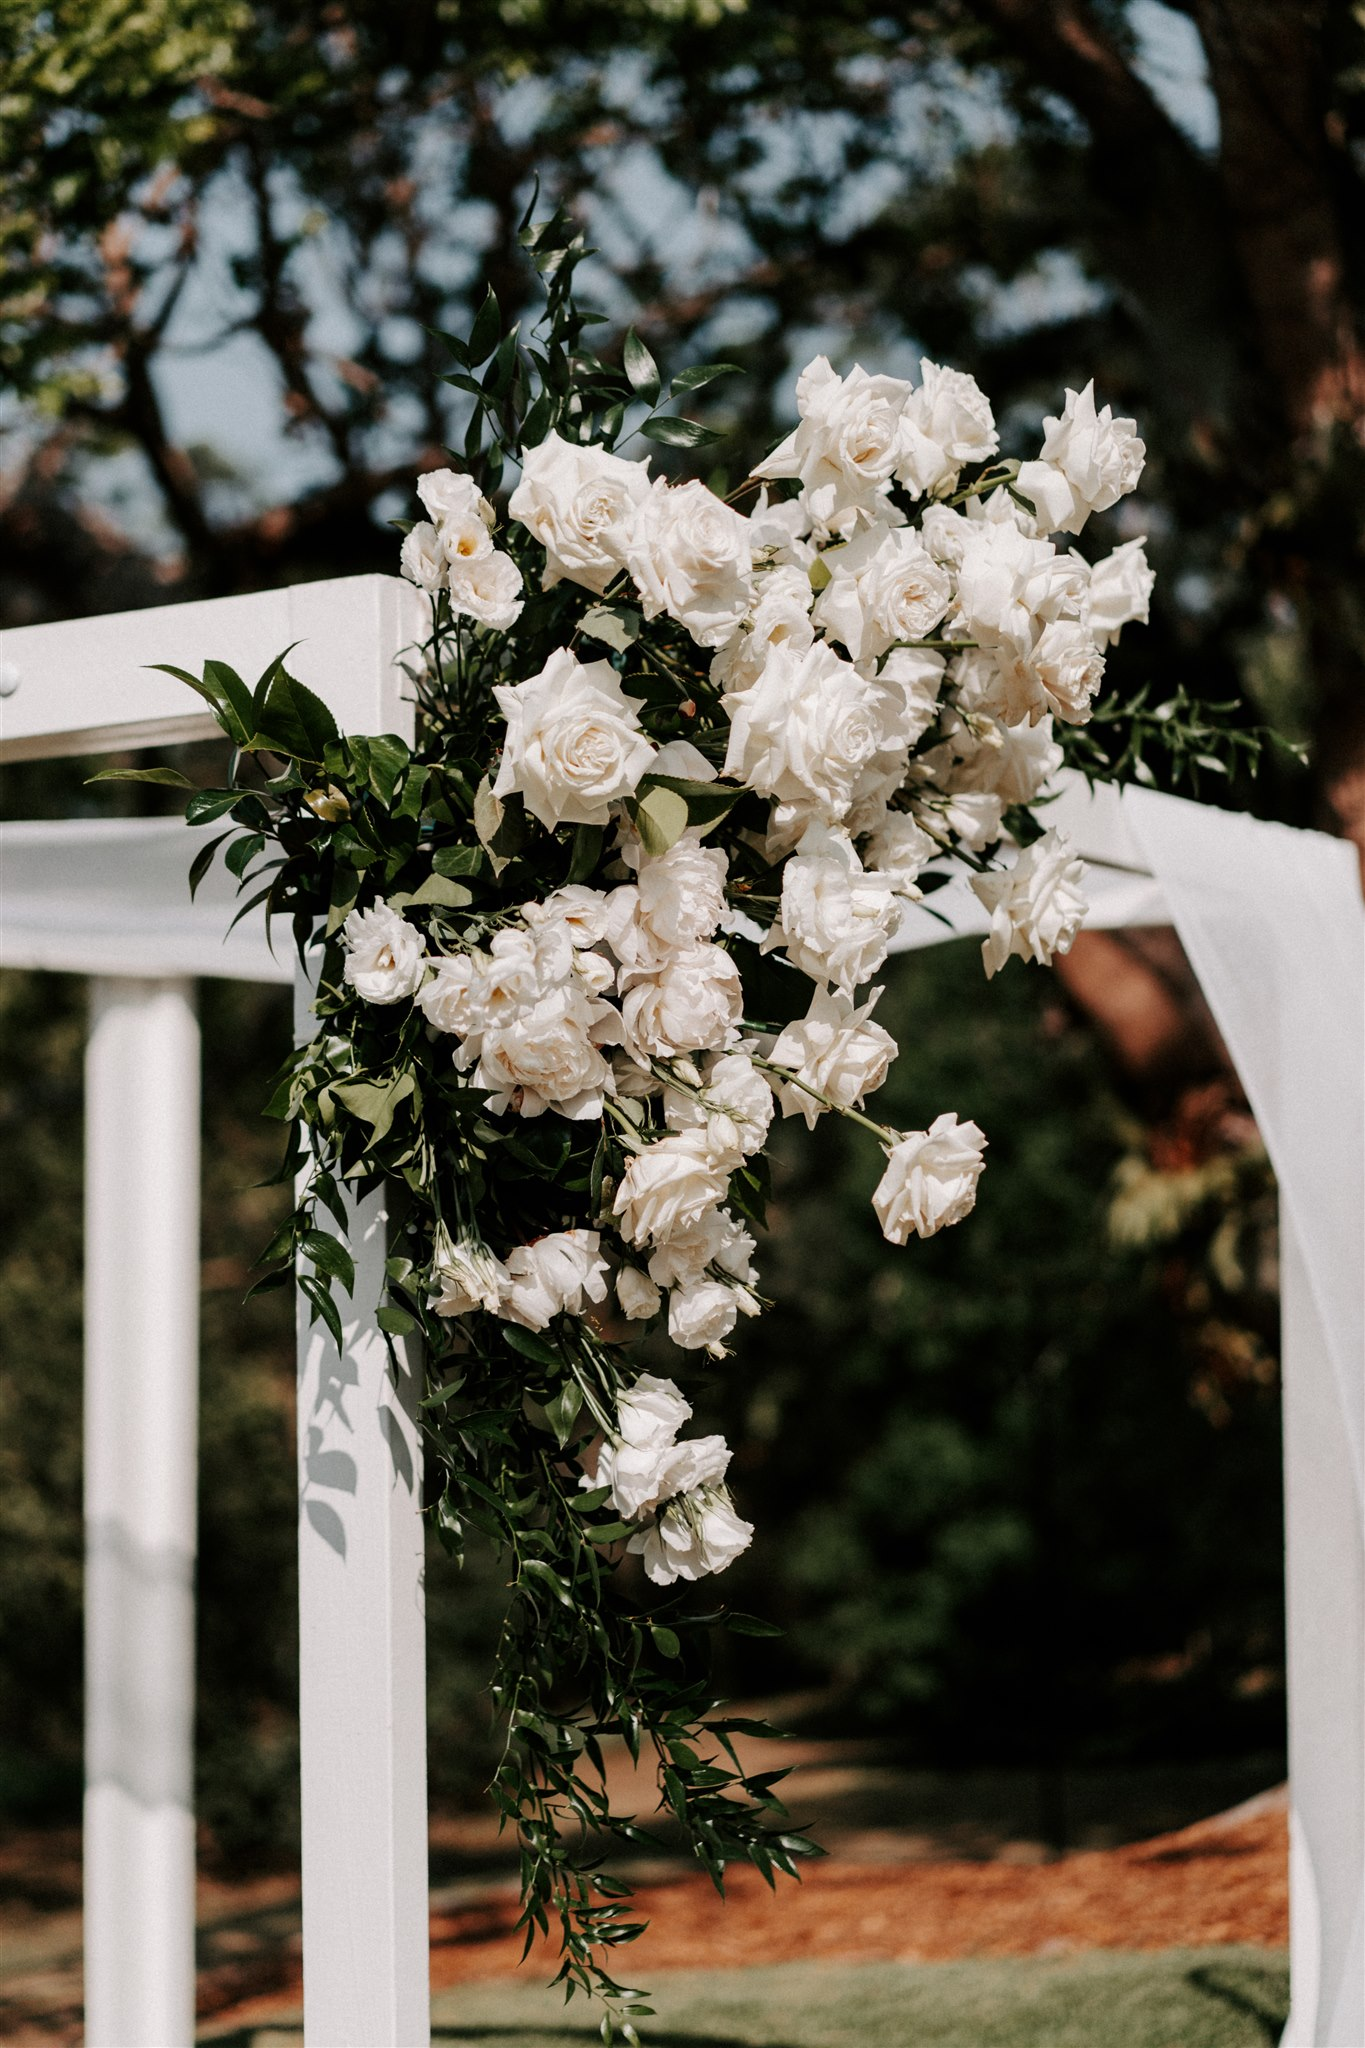 Corner arbour floral feature in white and green tones